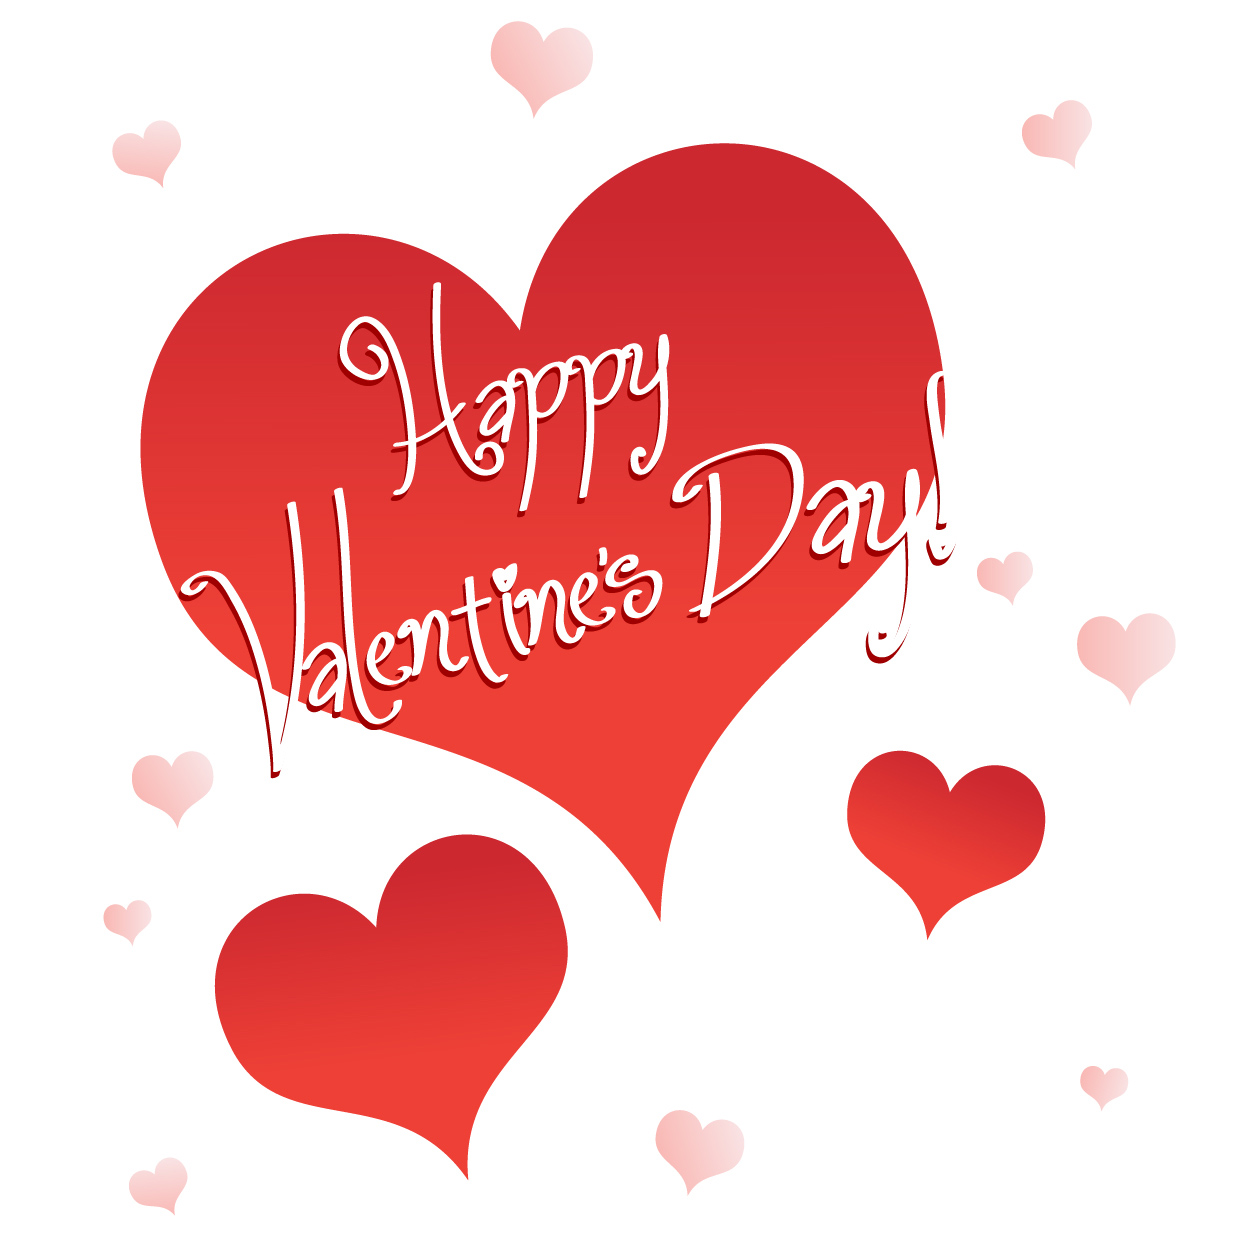 February Valentines Day Clip Art Free Cl-February valentines day clip art free clip art free clip art-1